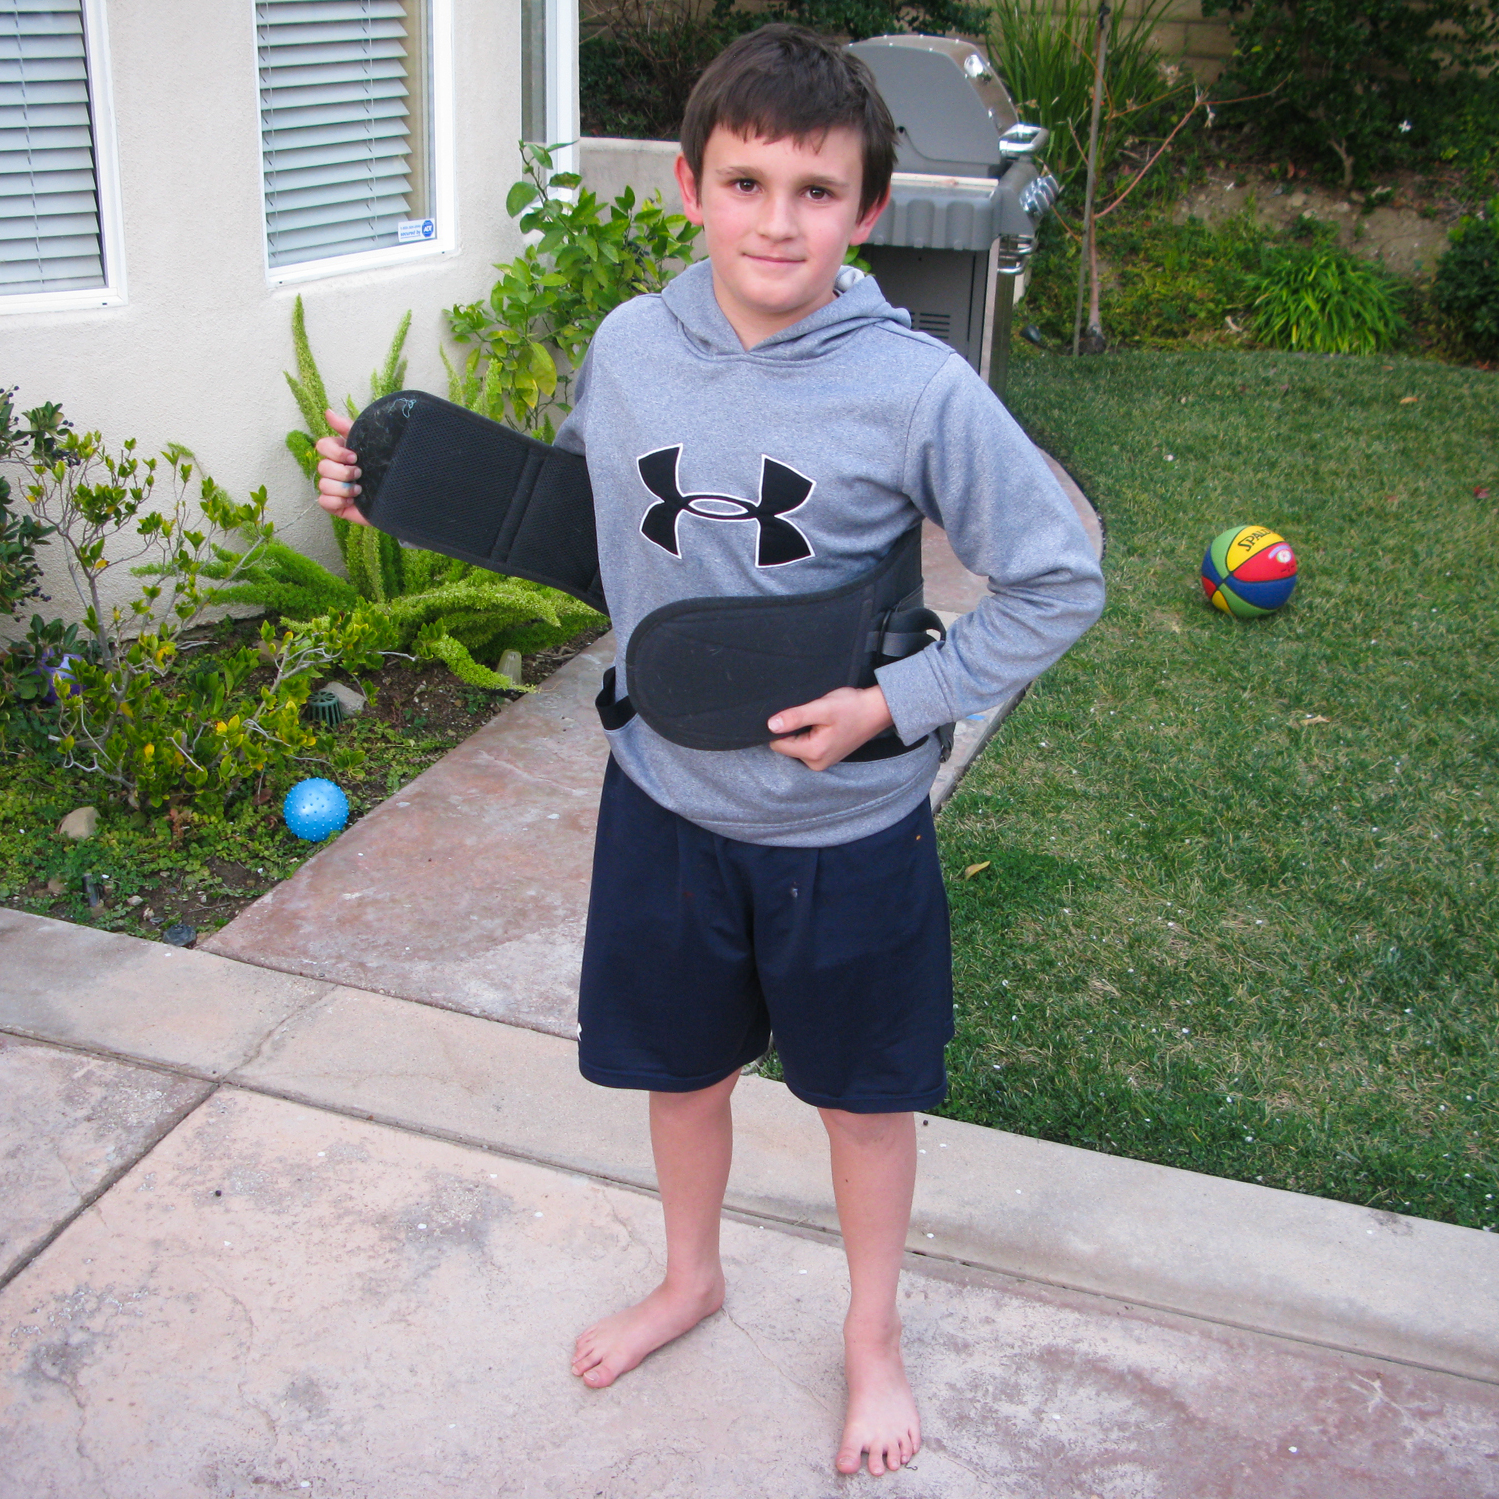 At age 10, Jack Everett has to wear a brace because of a fracture in his back.